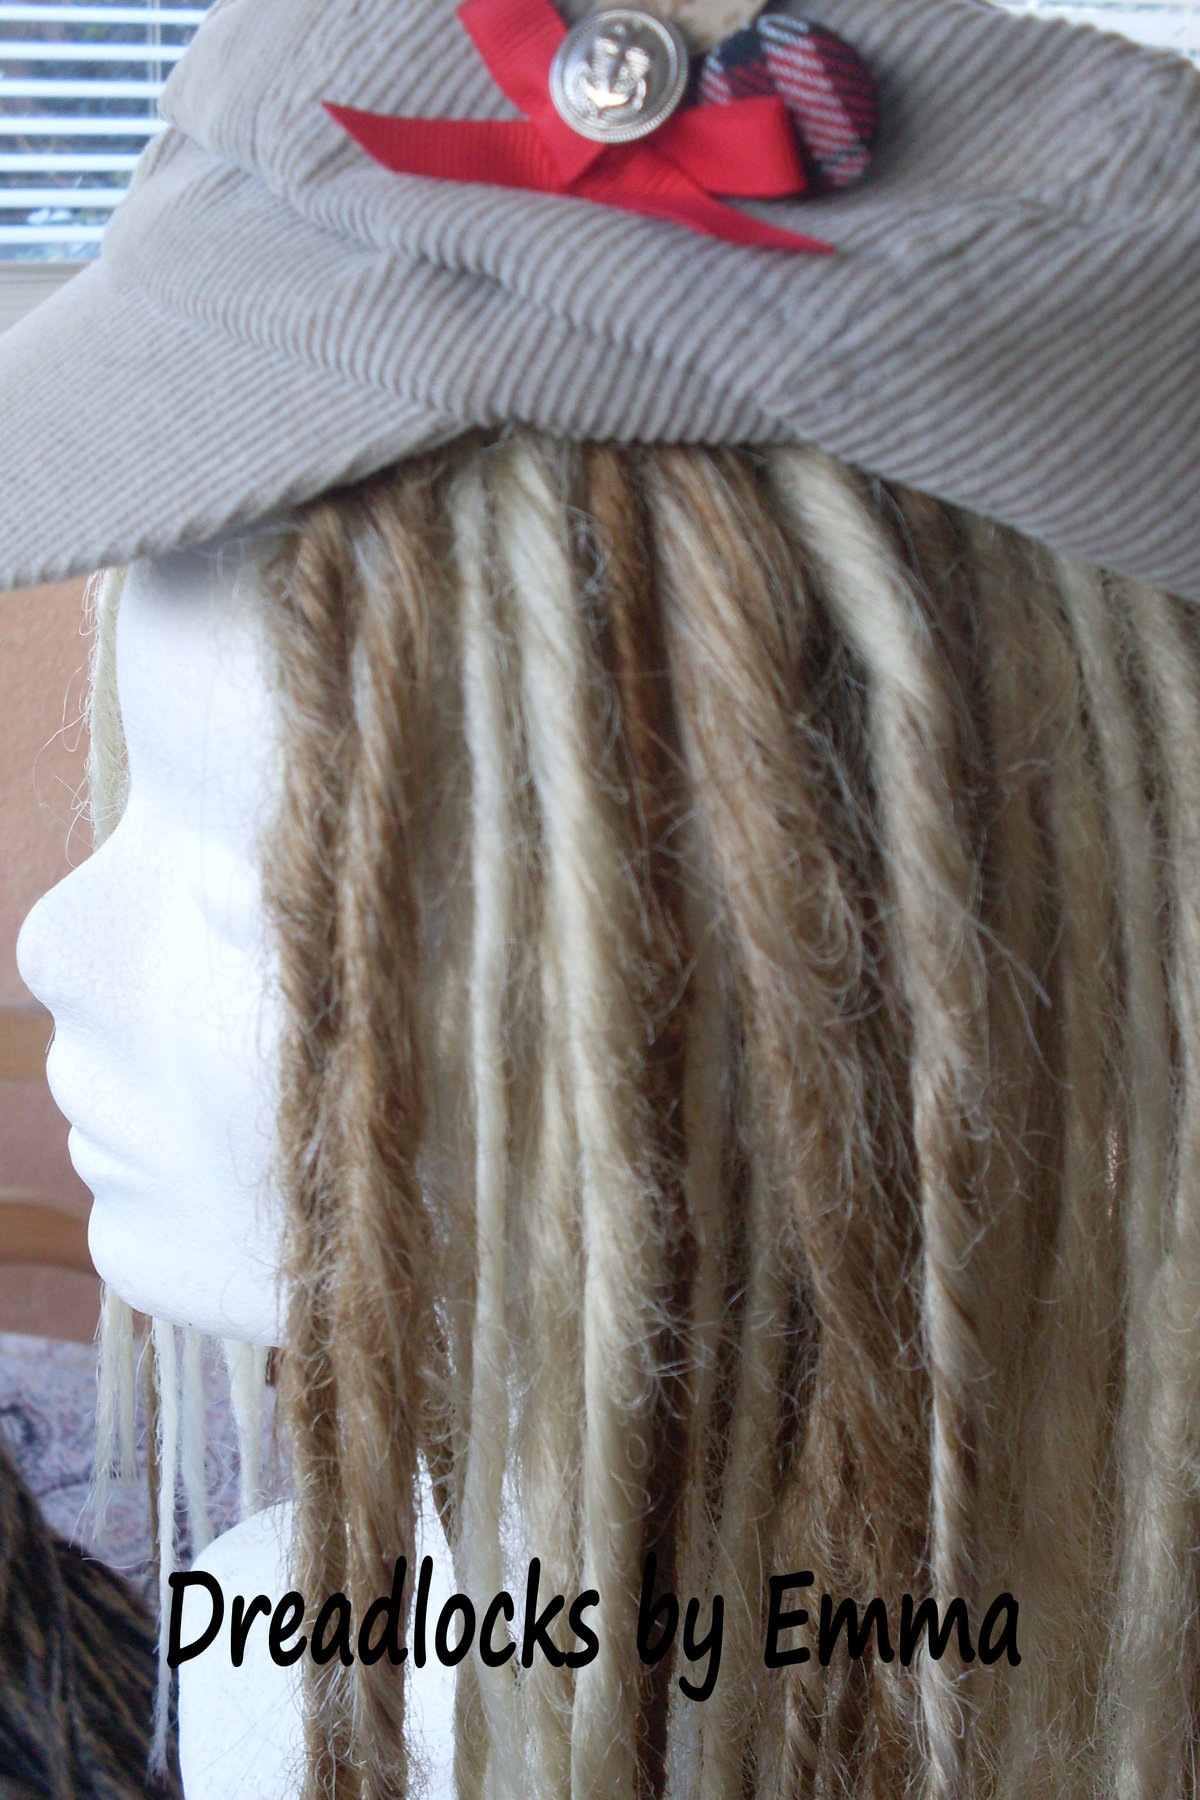 dreadlocks dreadfall extensions